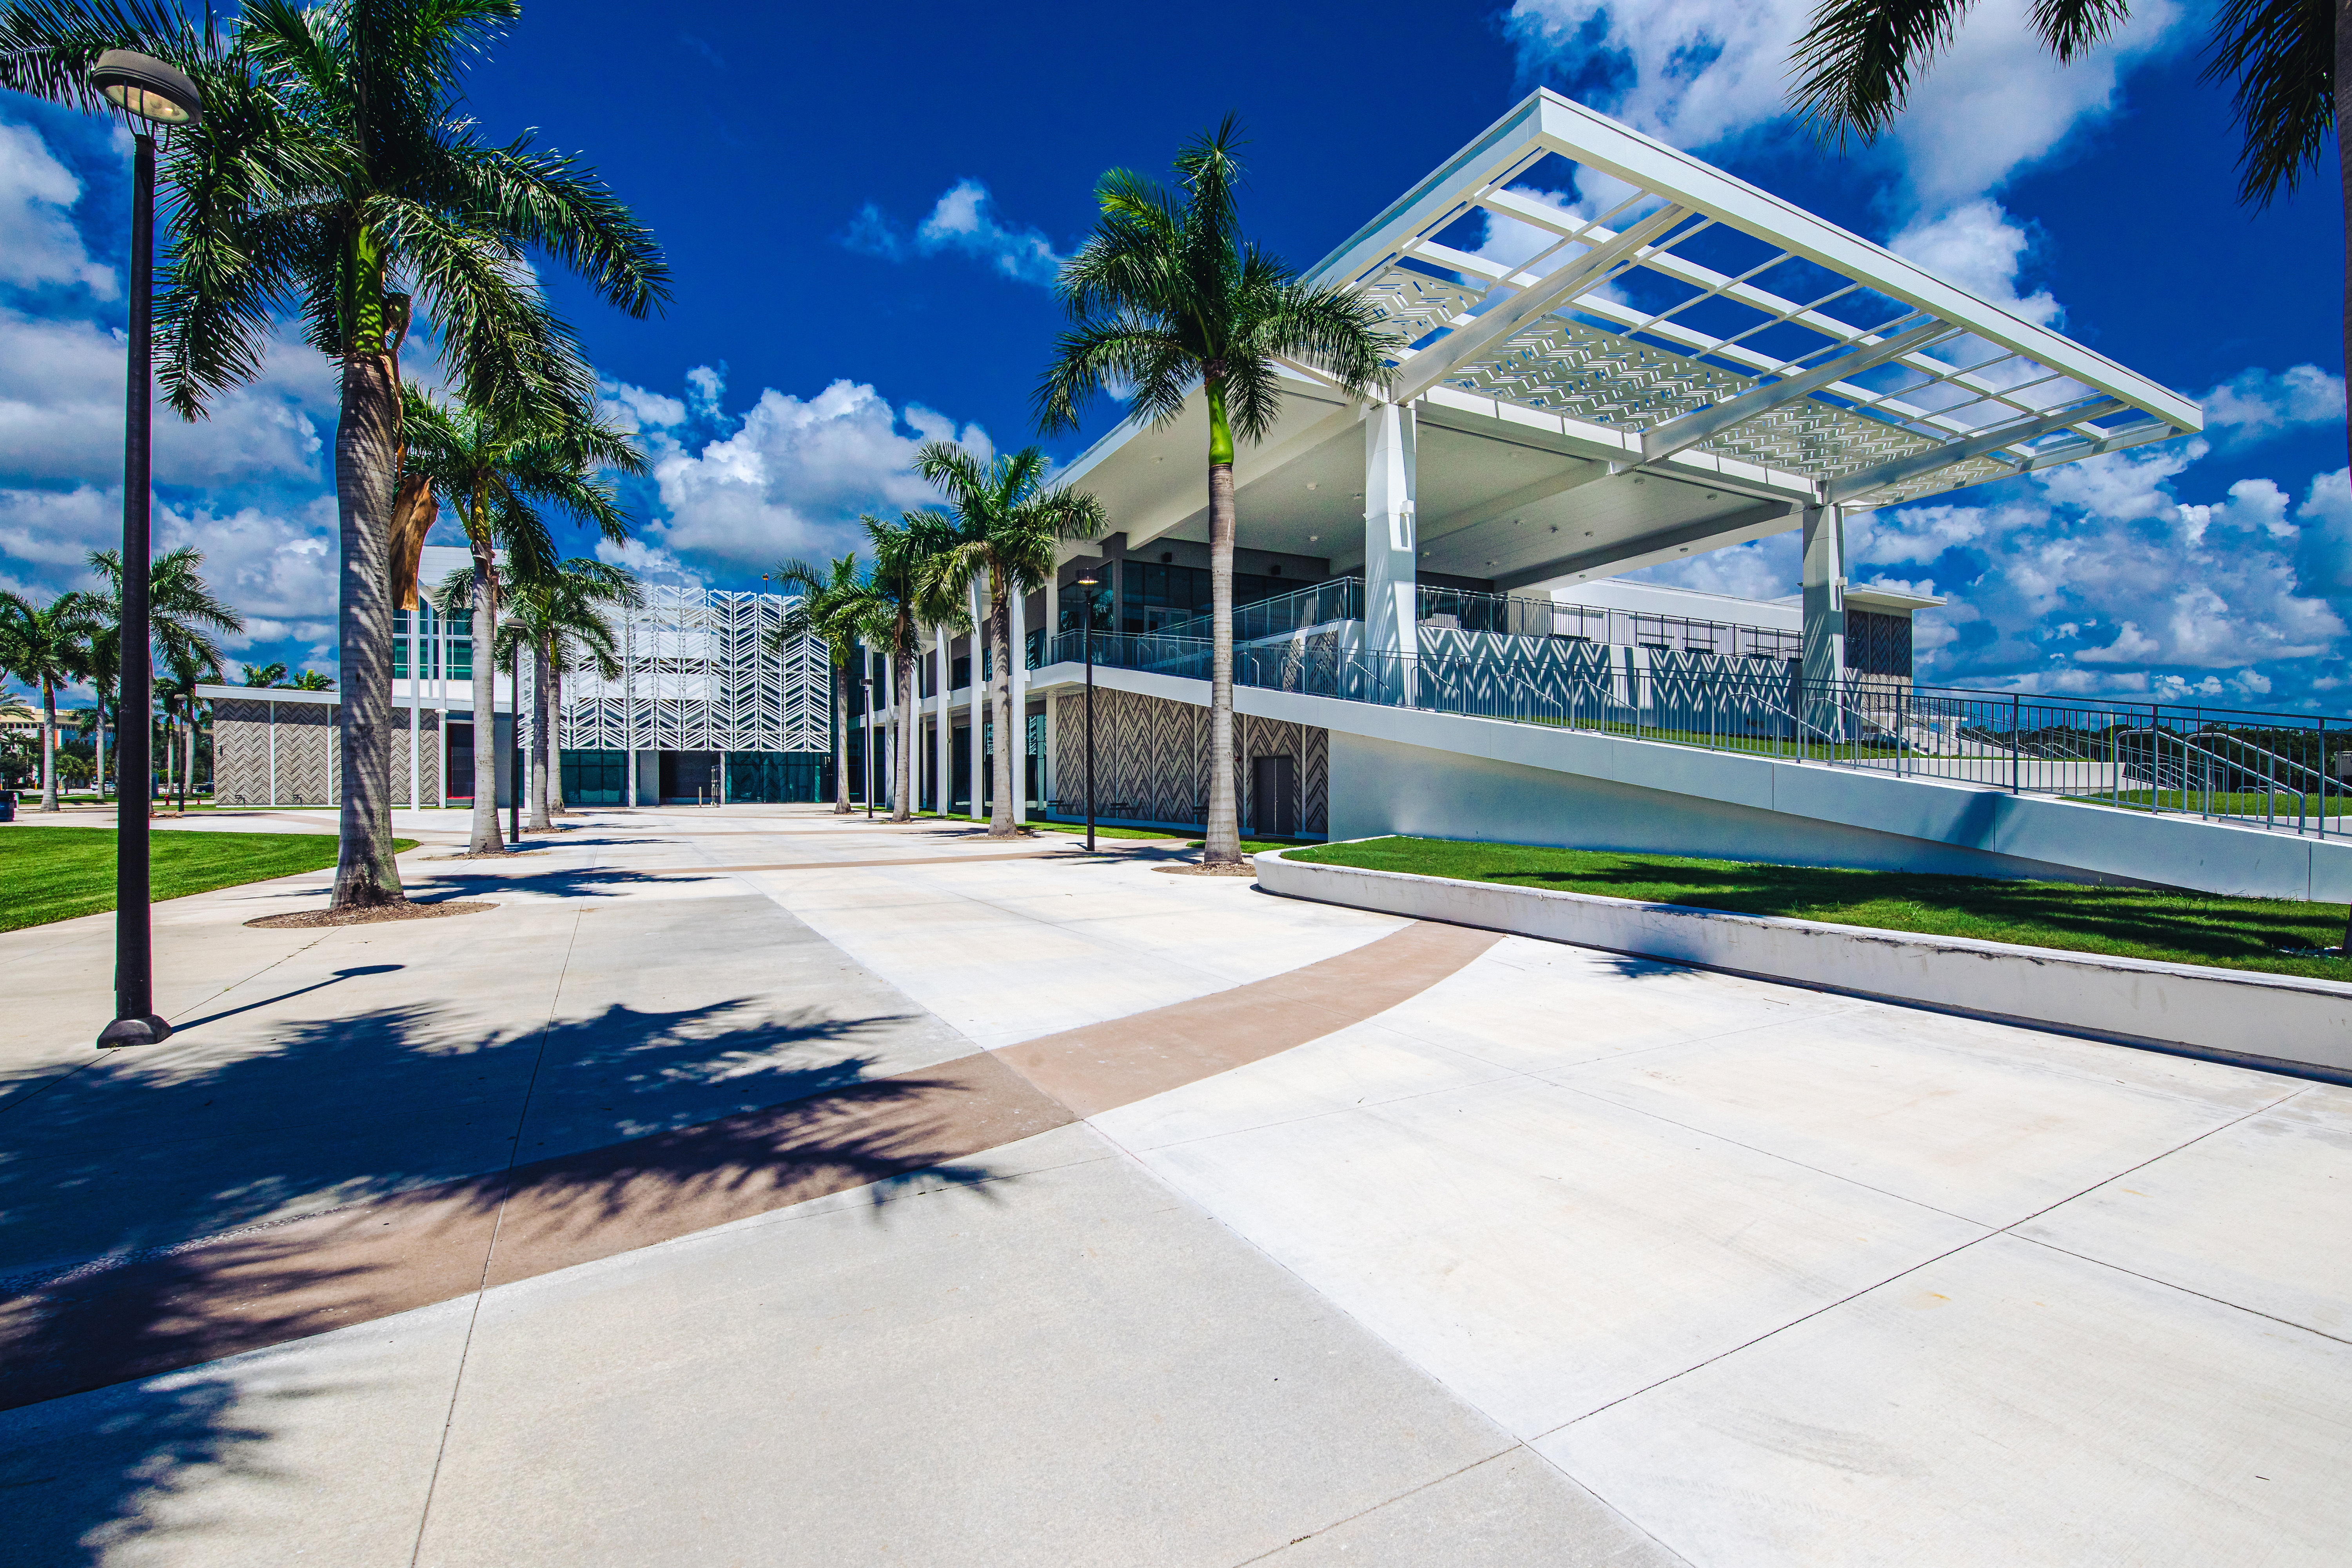 exterior of FAU complex building